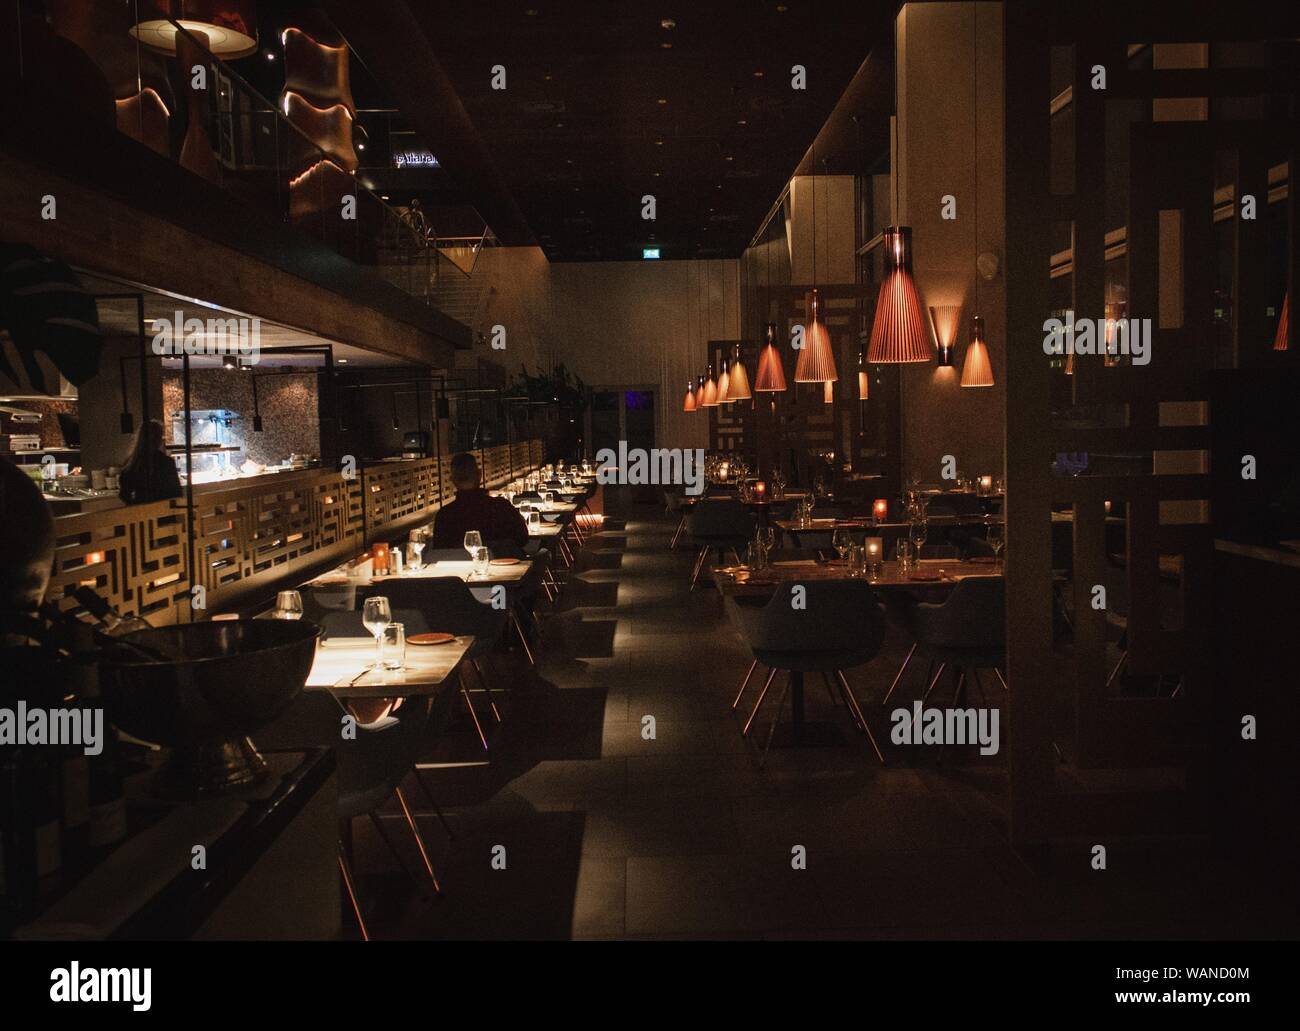 An Interior Shot Of A Dark Cafe With Light Brown Walls And Lights Hanging Off The Ceiling Stock Photo Alamy